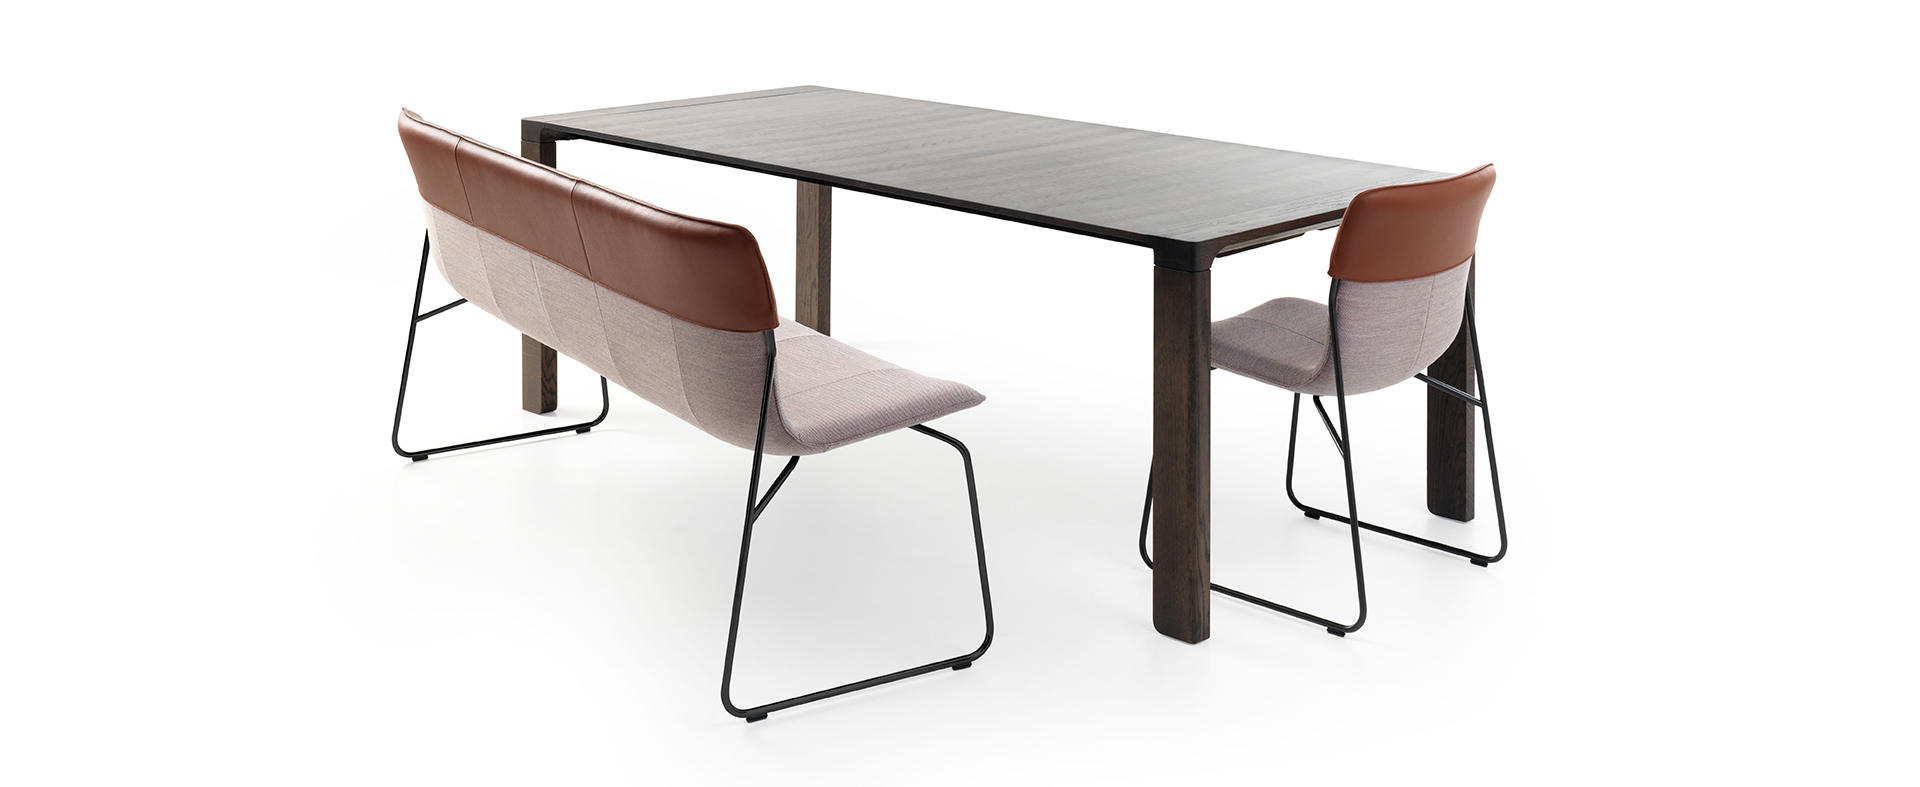 Design Dining room bench Didore by Leolux